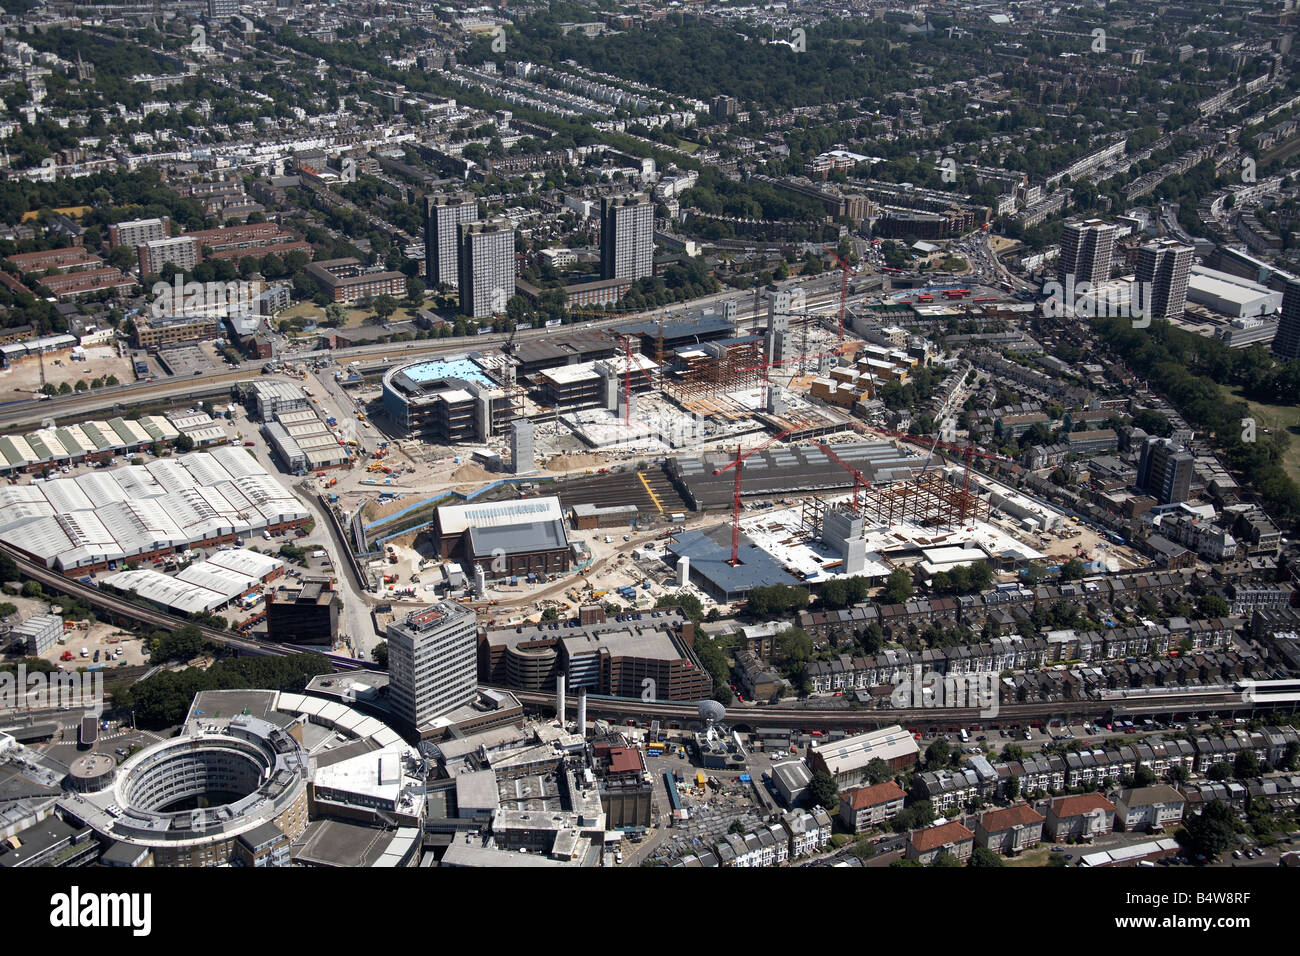 Aerial view south east of BBC TV Centre Wood Lane Westfield White City Development Construction Site London W12 - Stock Image